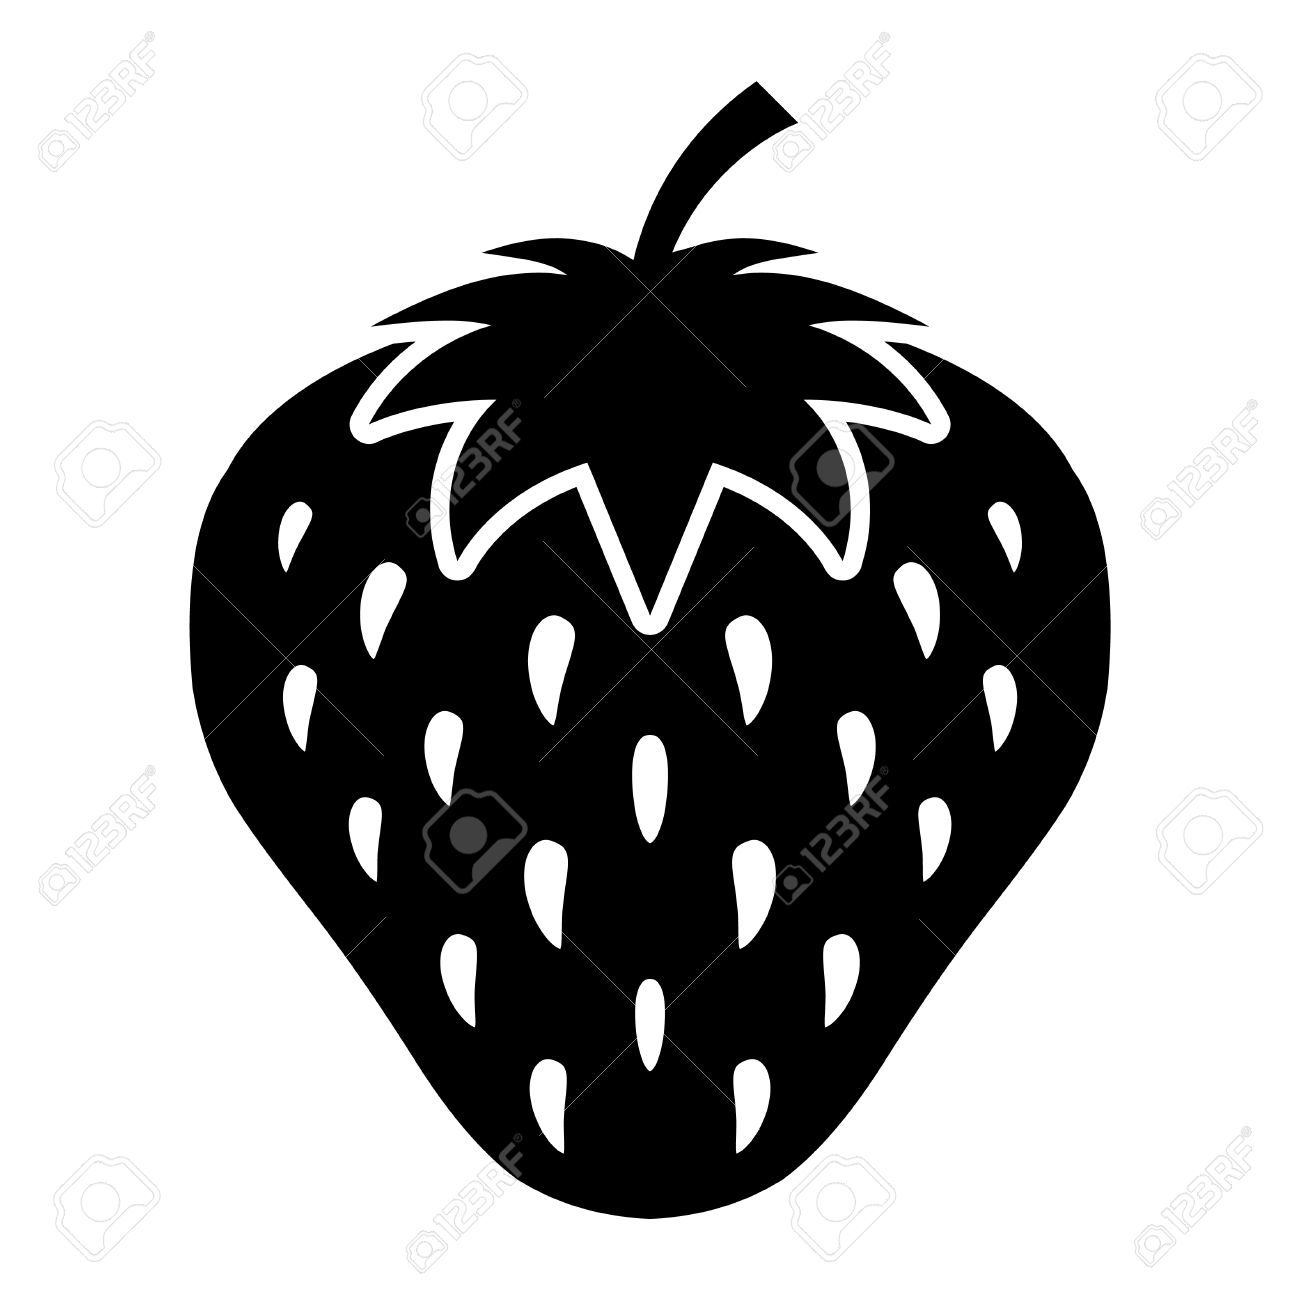 Strawberry Vector Icon Royalty Free Cliparts, Vectors, And Stock ... for Clipart Strawberry Black And White  557ylc